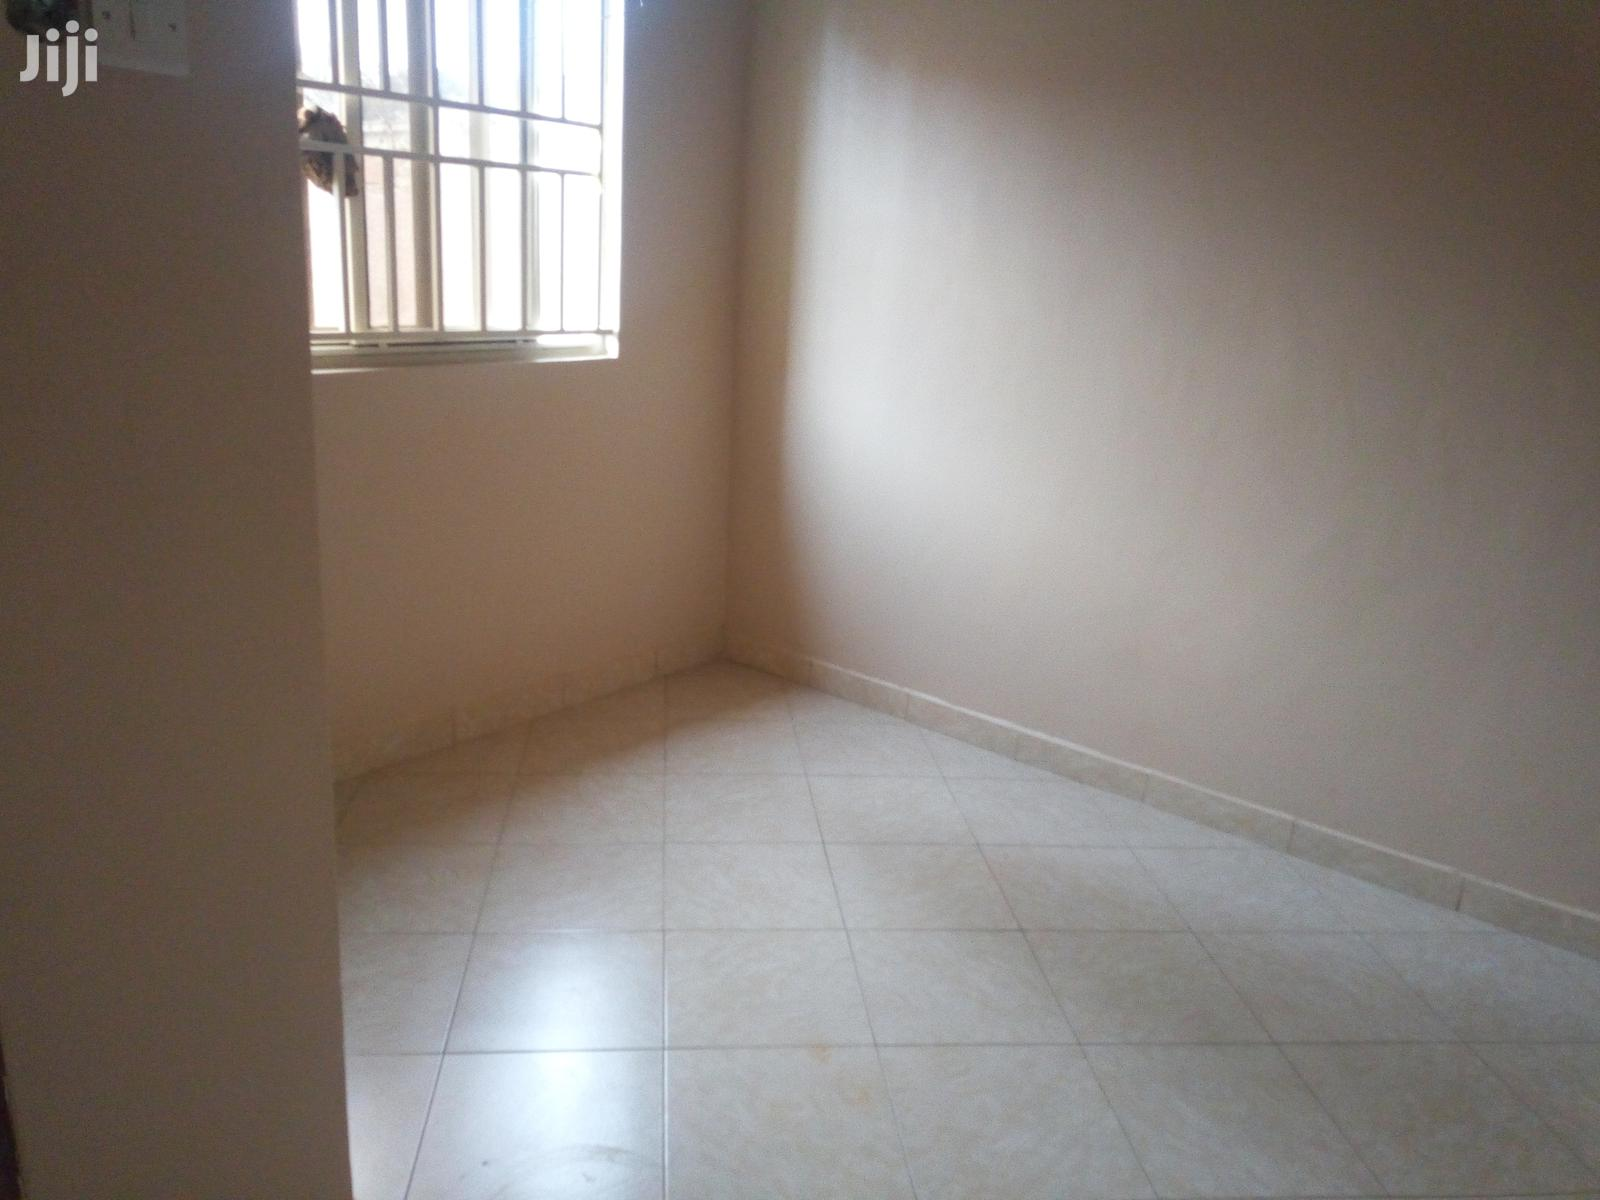 Double Room All Self Contained For Rent In Kyaliwajjala | Houses & Apartments For Rent for sale in Kampala, Central Region, Uganda